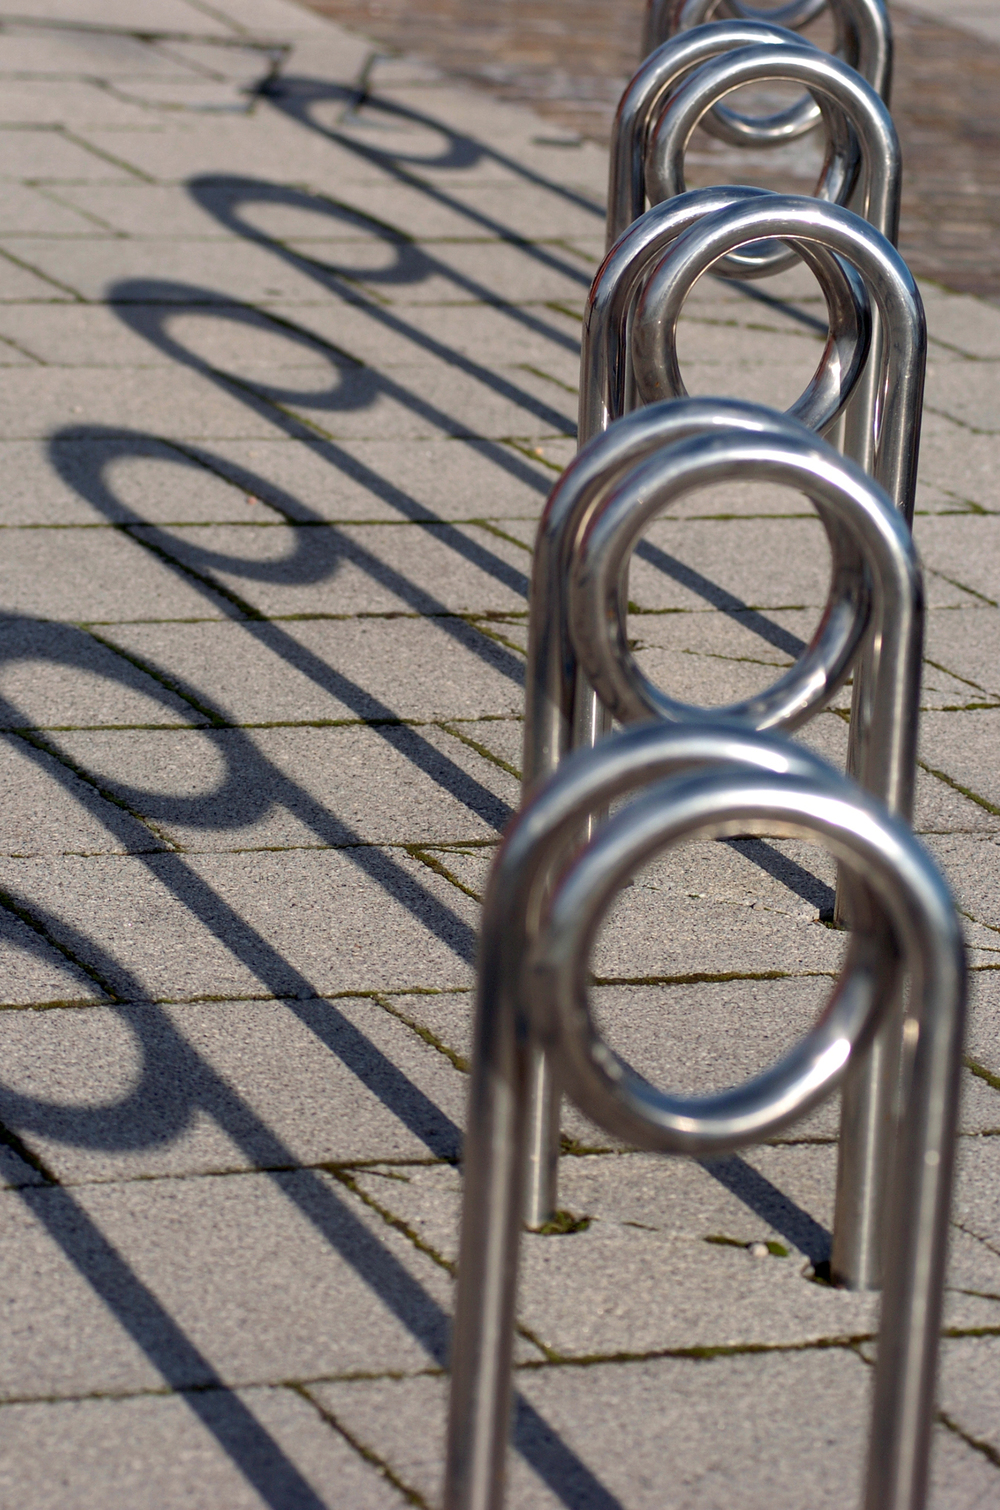 Cycle parking is increasingly important as more and more people cycle rather than driving